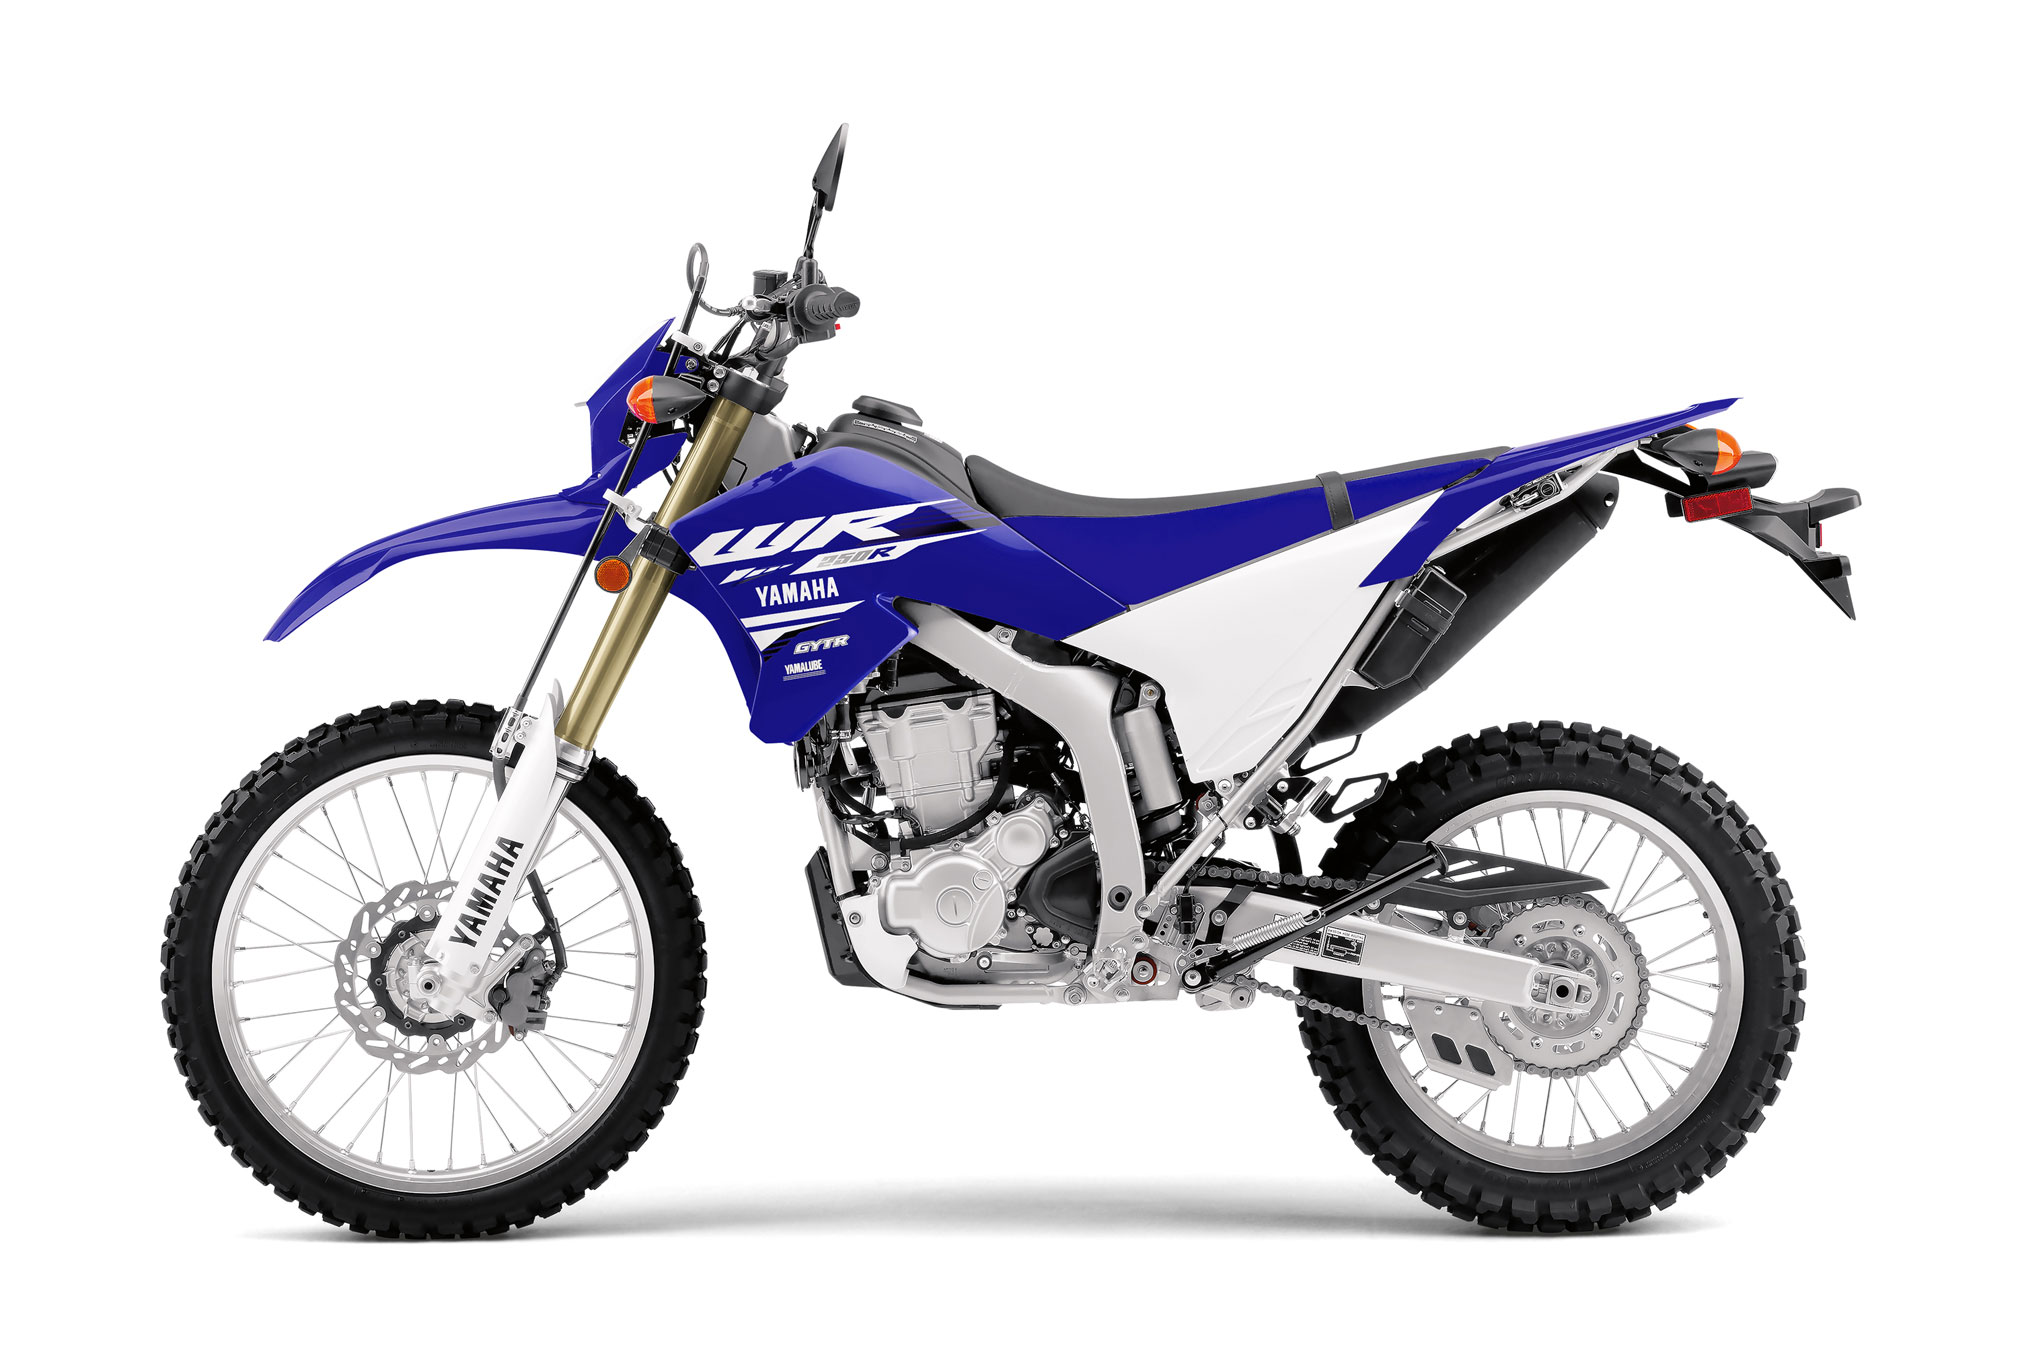 2018 yamaha wr250r review totalmotorcycle for Yamaha dual sports